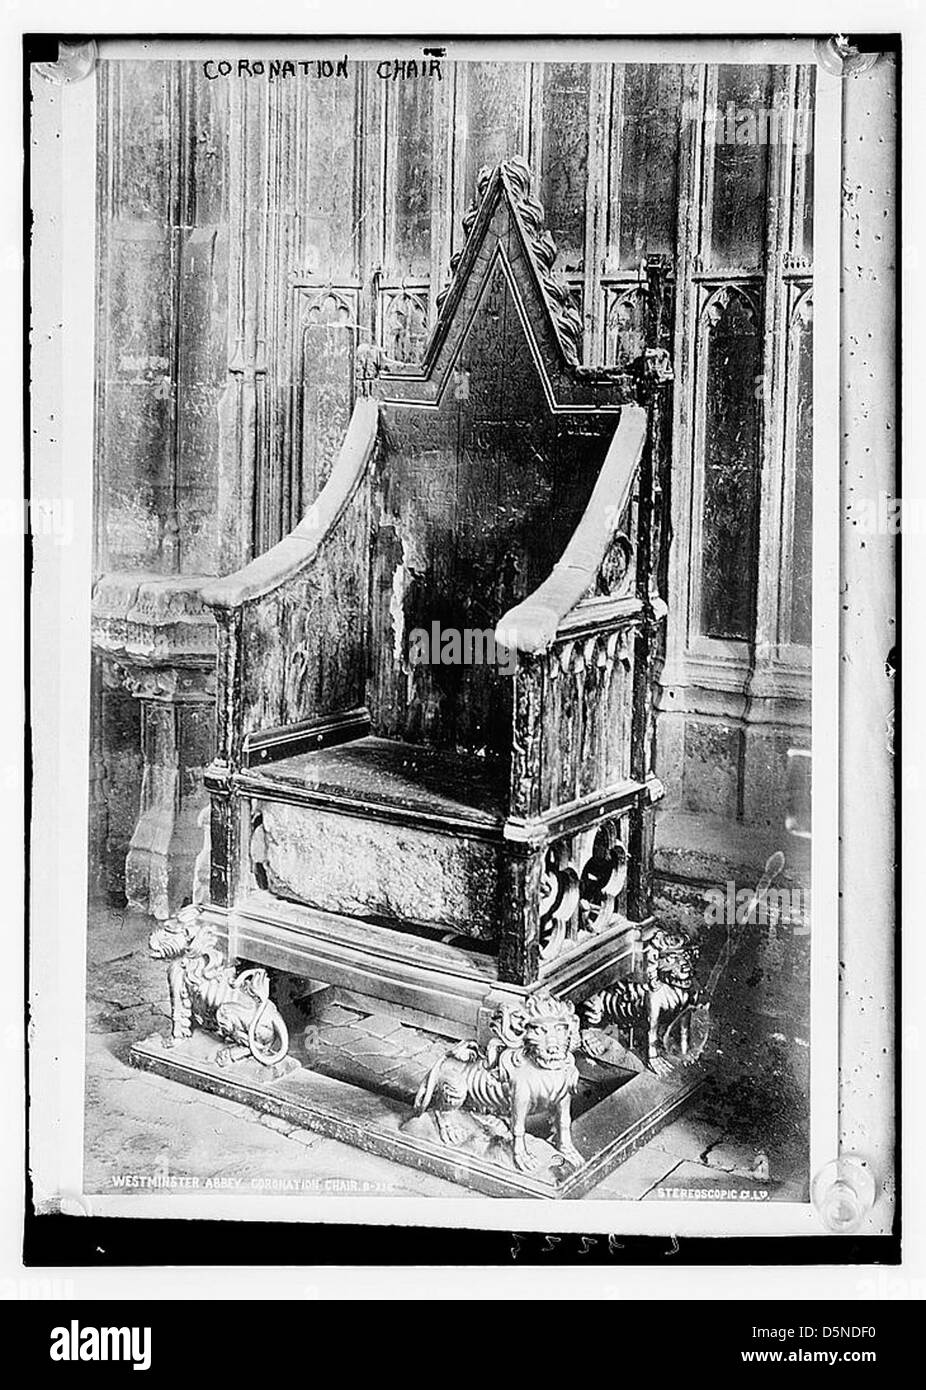 Coronation Chair (LOC) - Stock Image